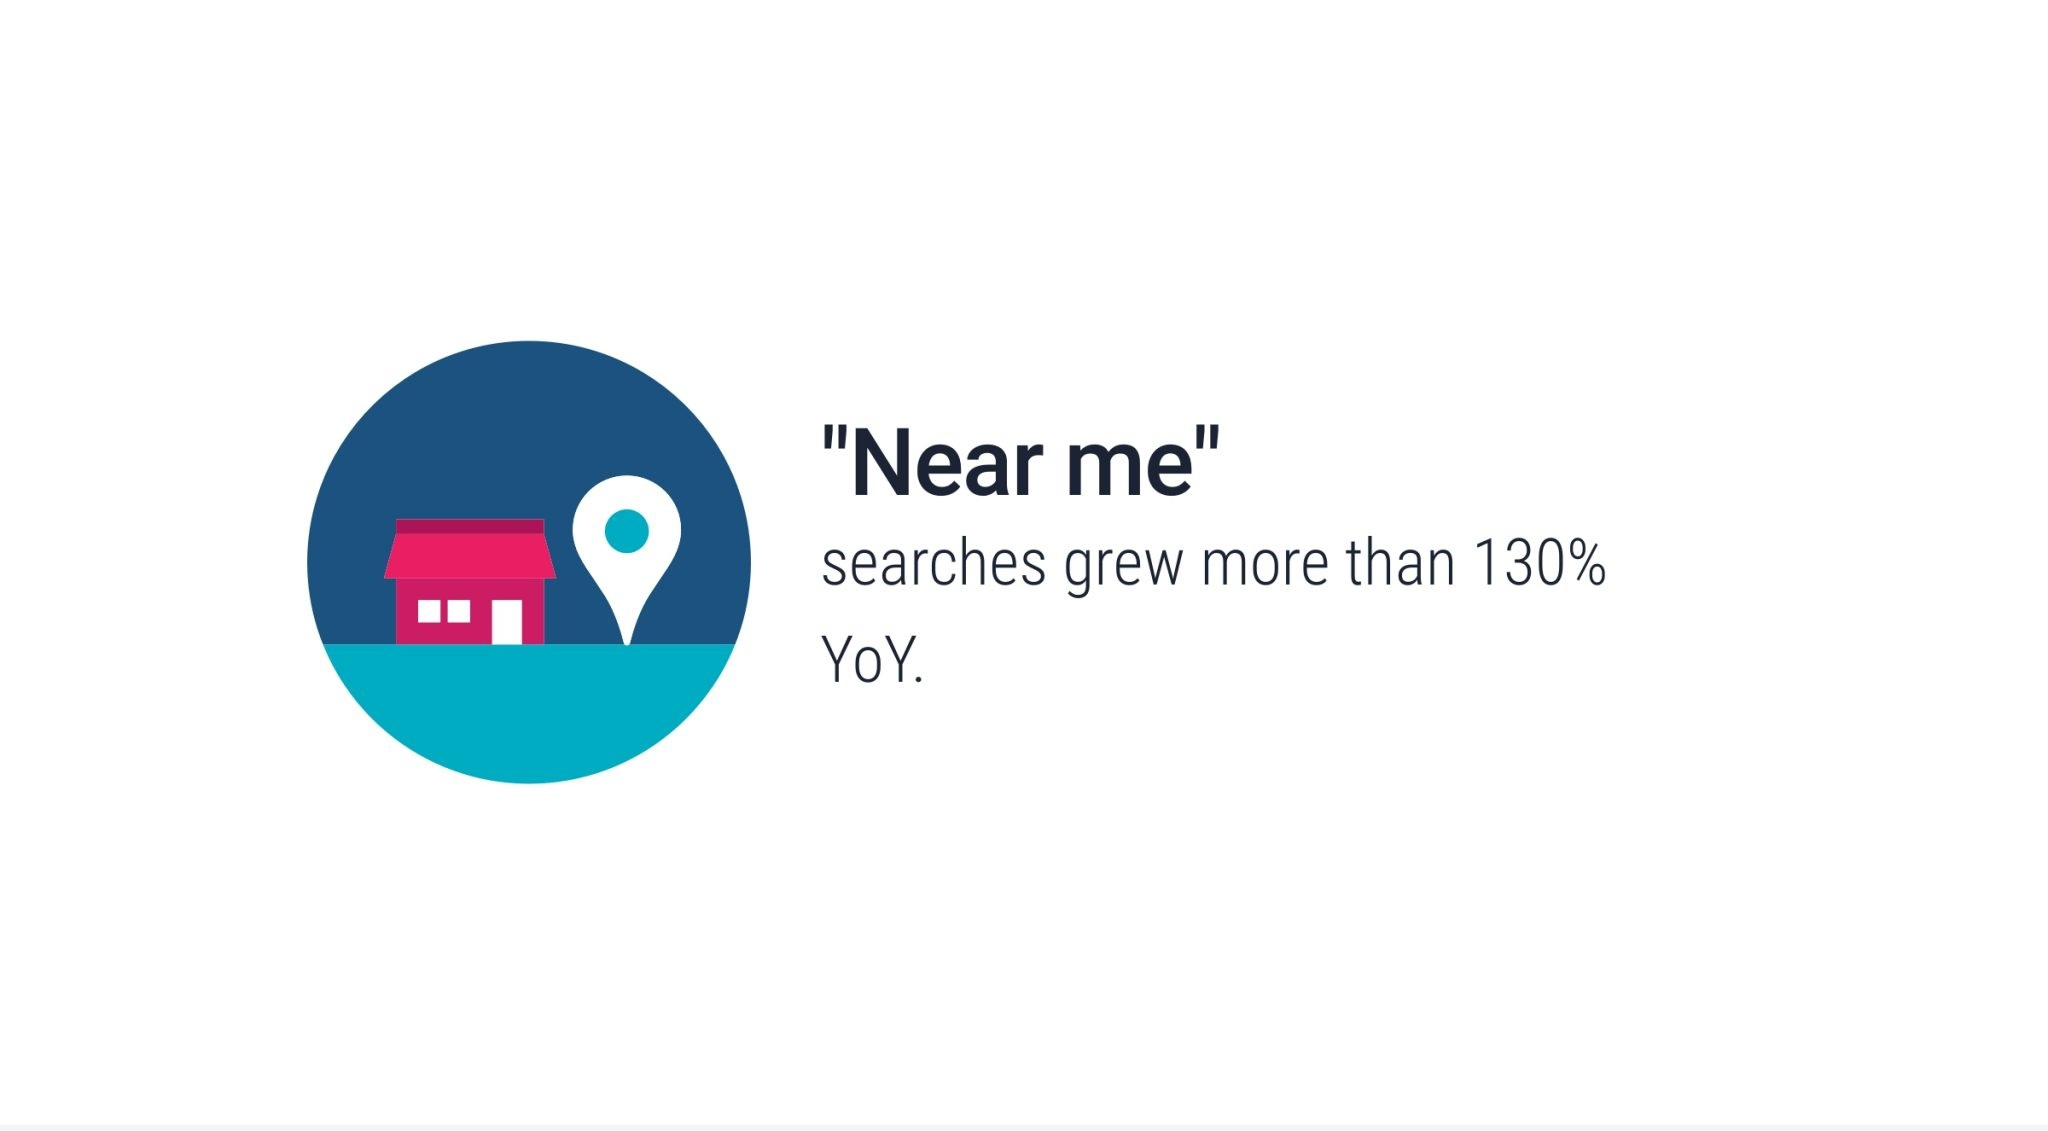 growth-of-near-me-searches